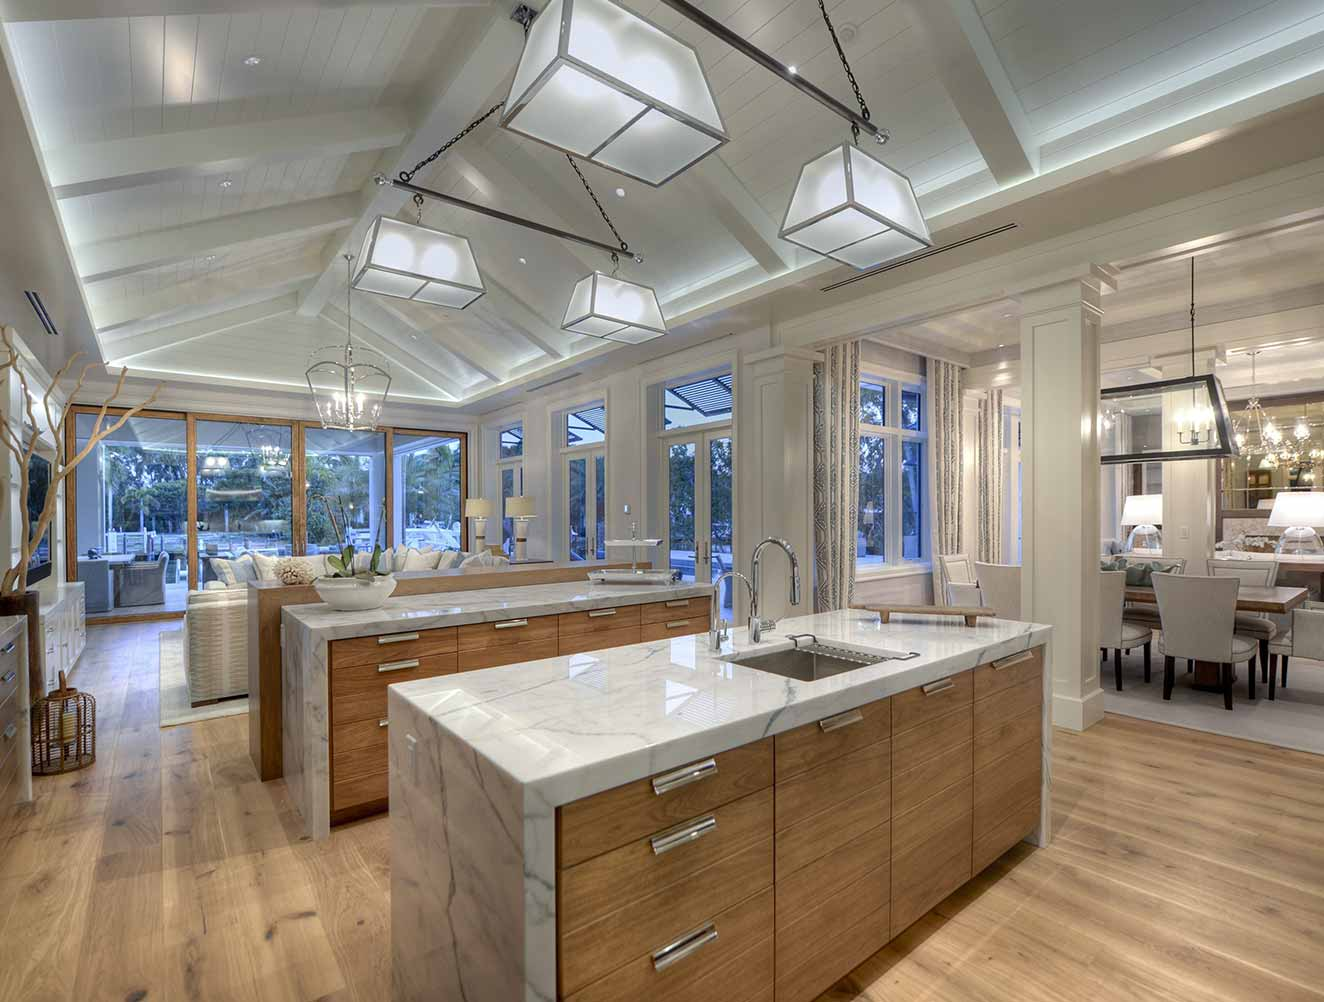 Kitchen and Dining Room at Little Harbour Residence in Naples Florida, single family home designed by Kukk Architecture & Design Naples Architecture Firm